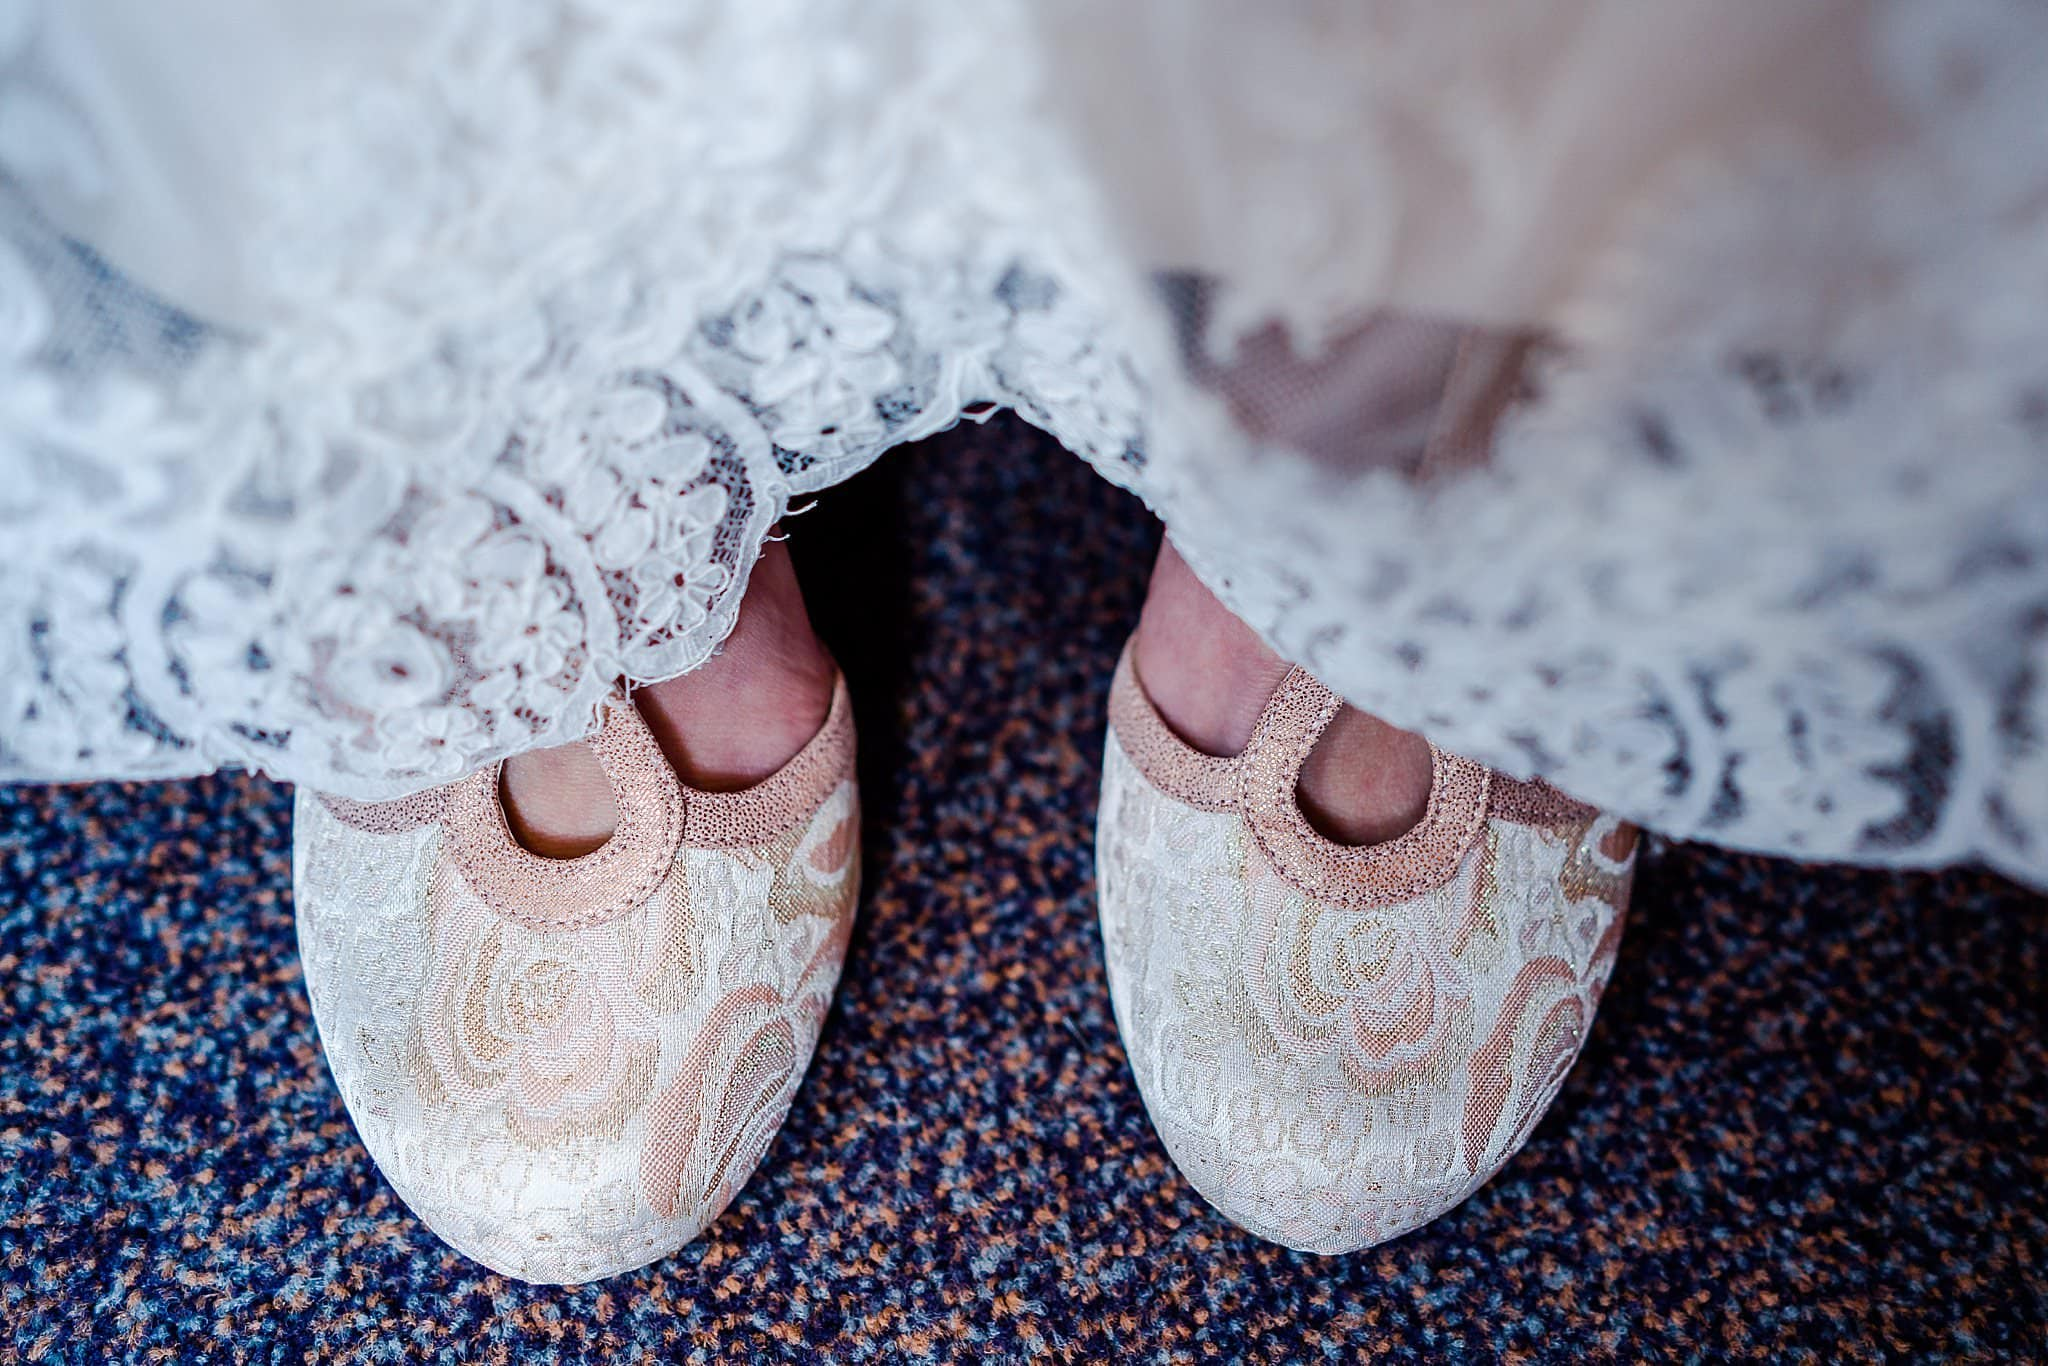 Bride's shoes poking out from under dress